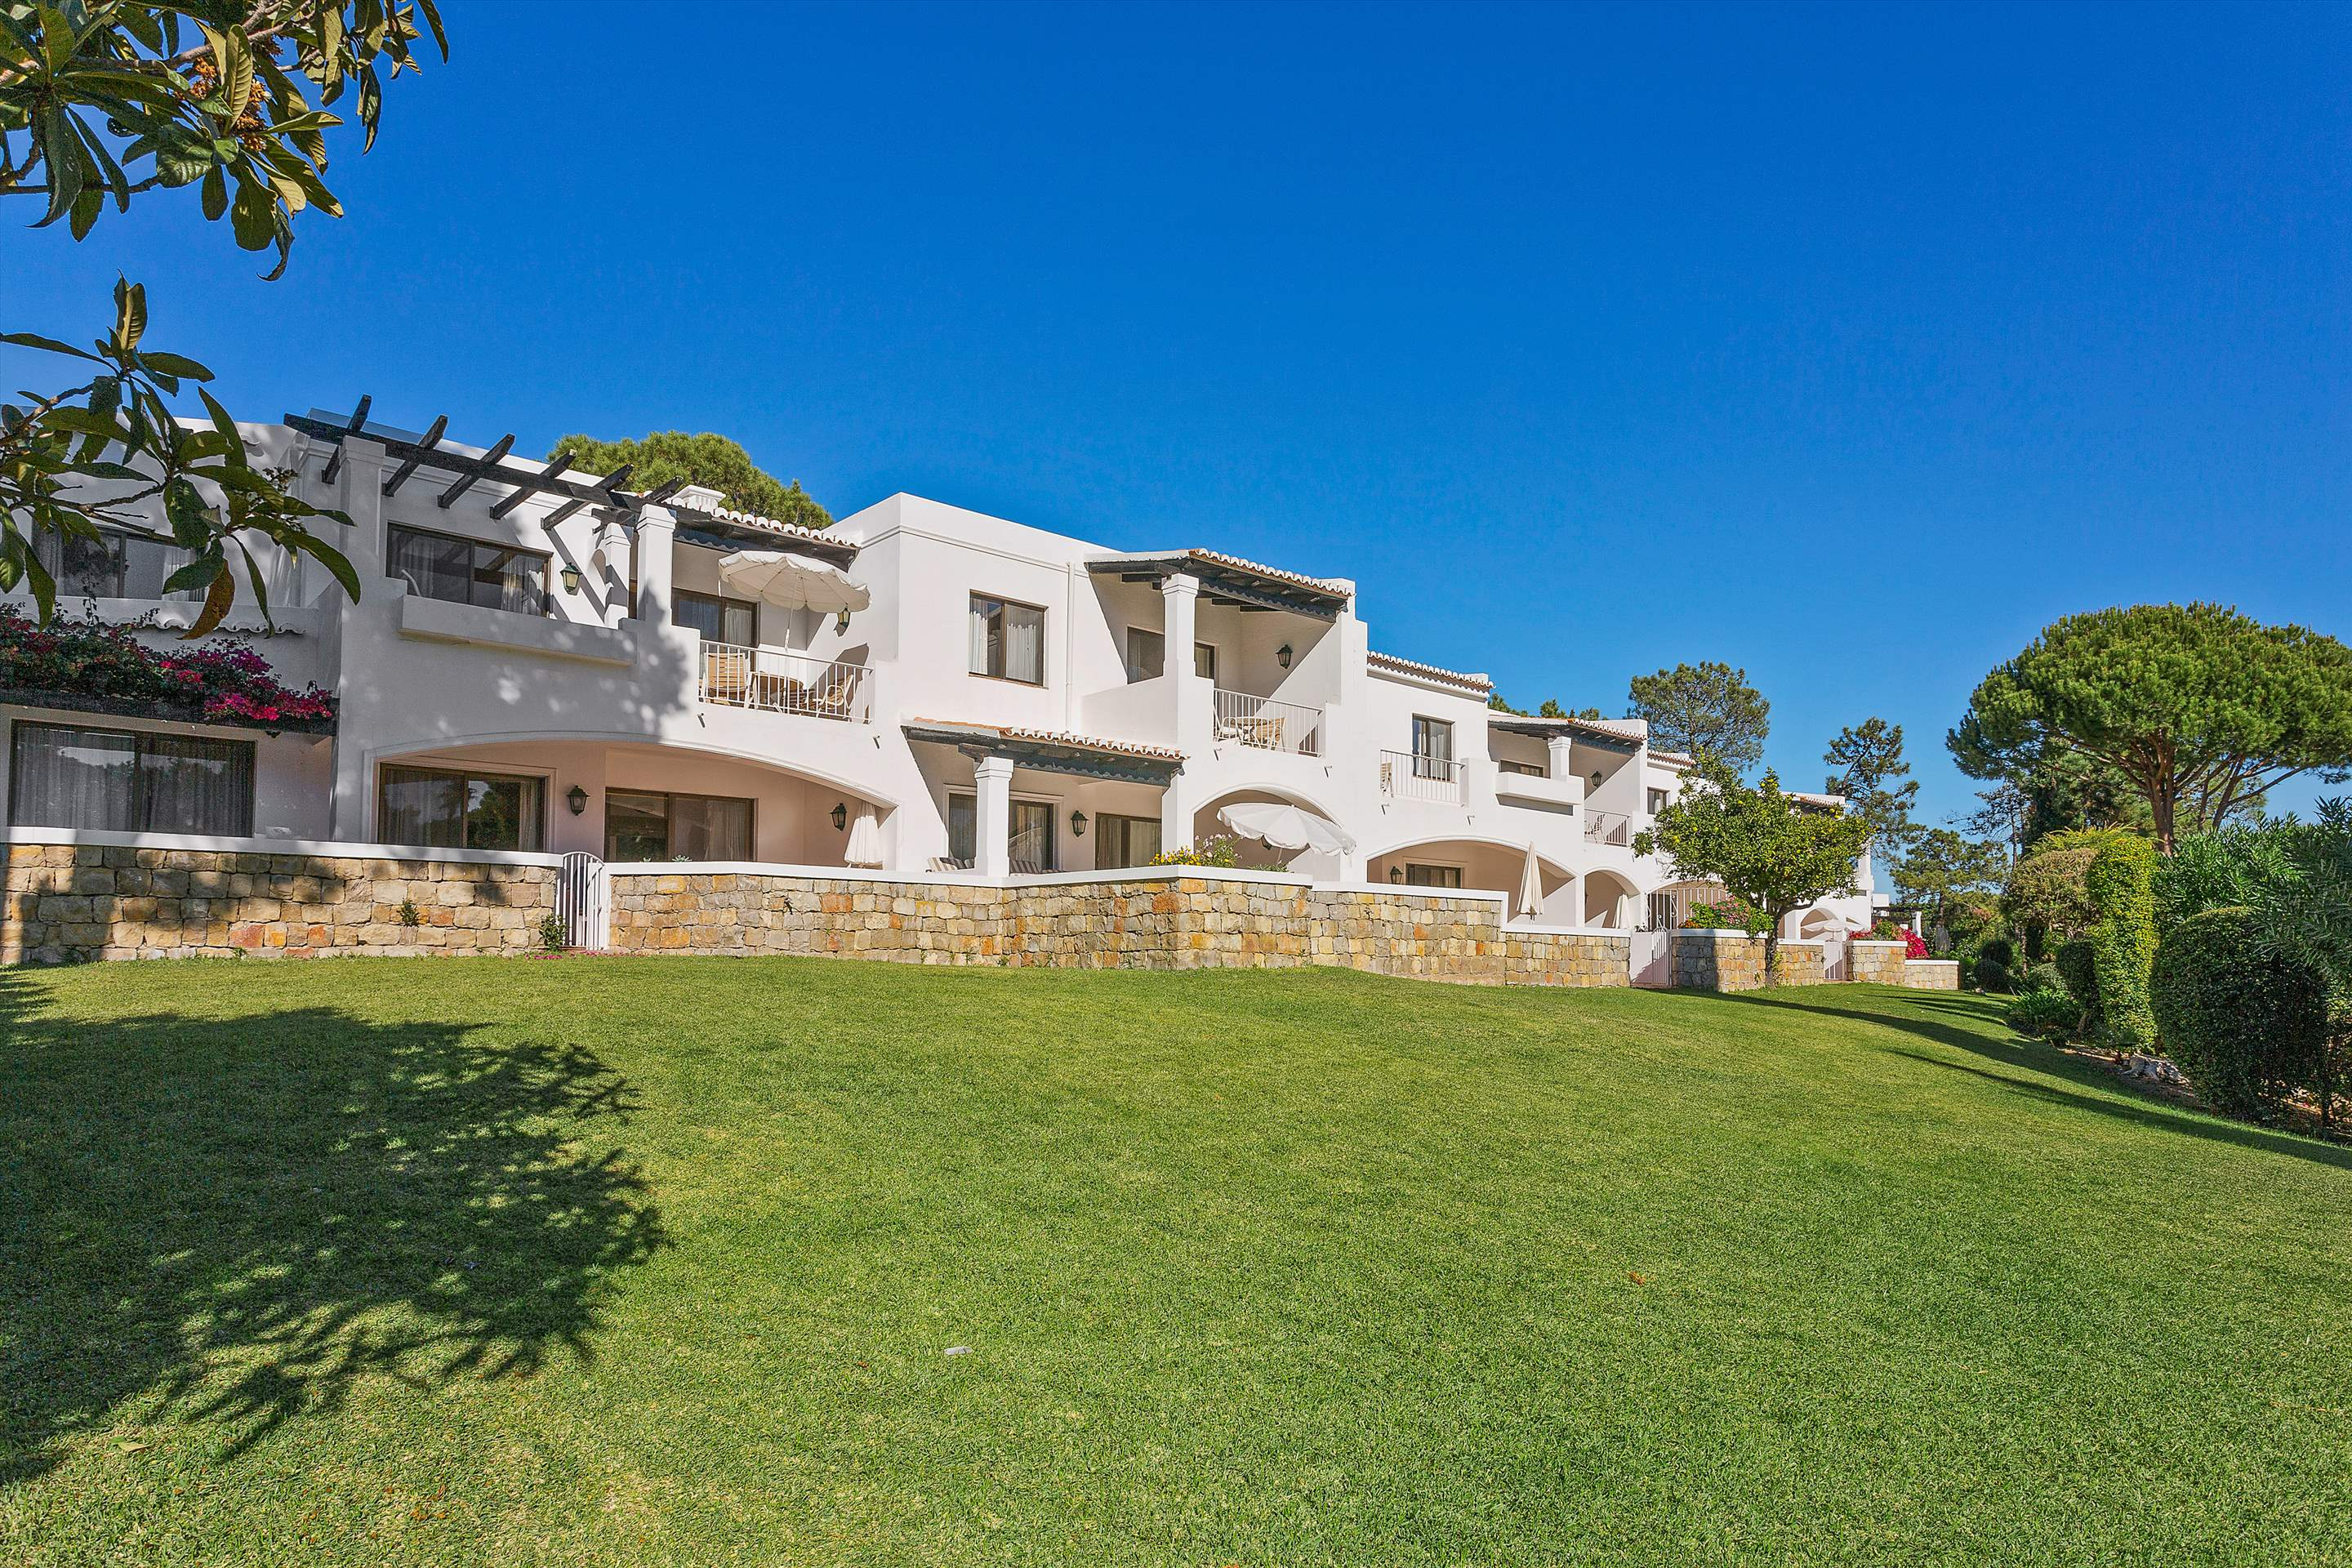 Four Seasons Country Club 2 Bed Townhouse, Superior - Sunday Arrival, 2 bedroom apartment in Four Seasons Country Club, Algarve Photo #1